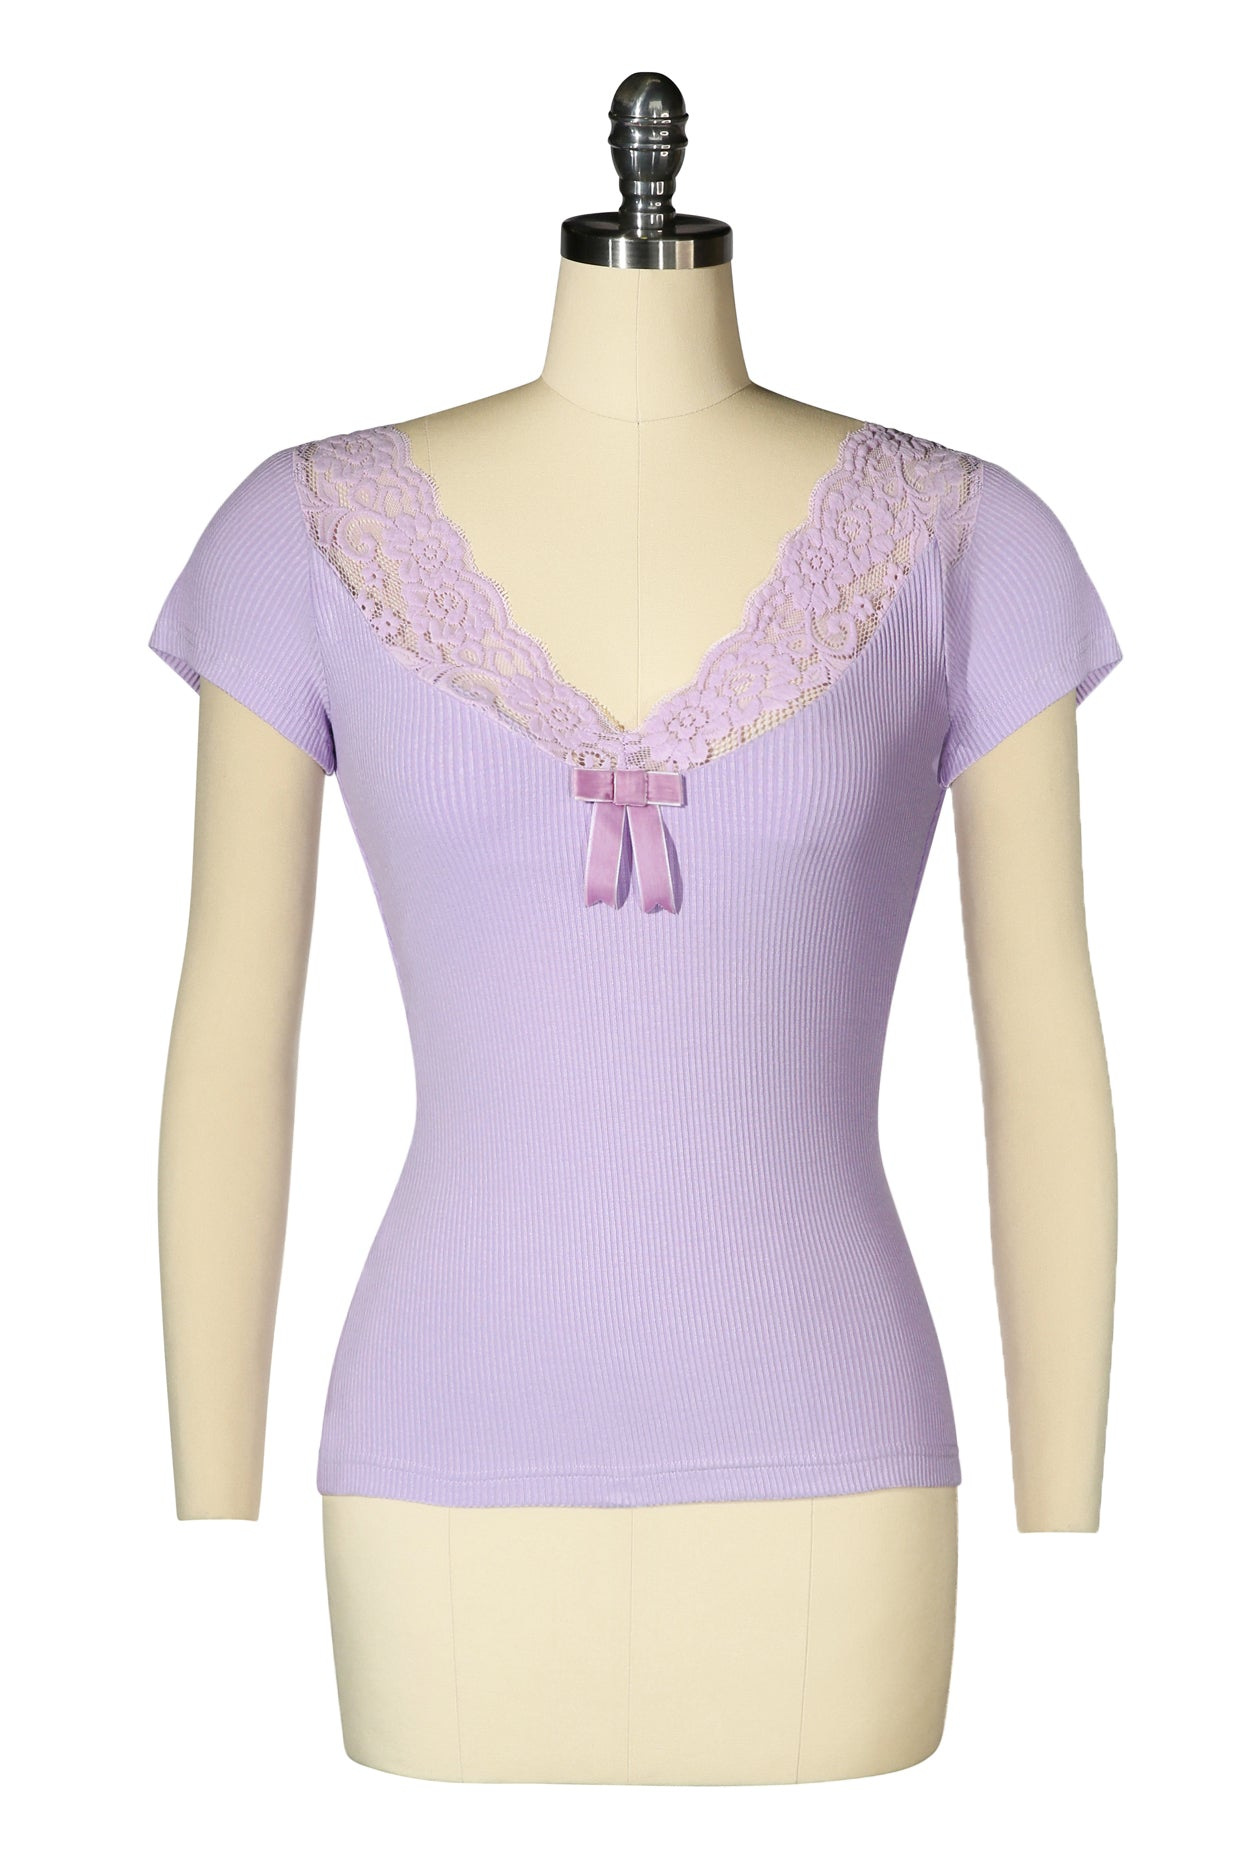 Up Up and Away T-Shirt (Lavender)